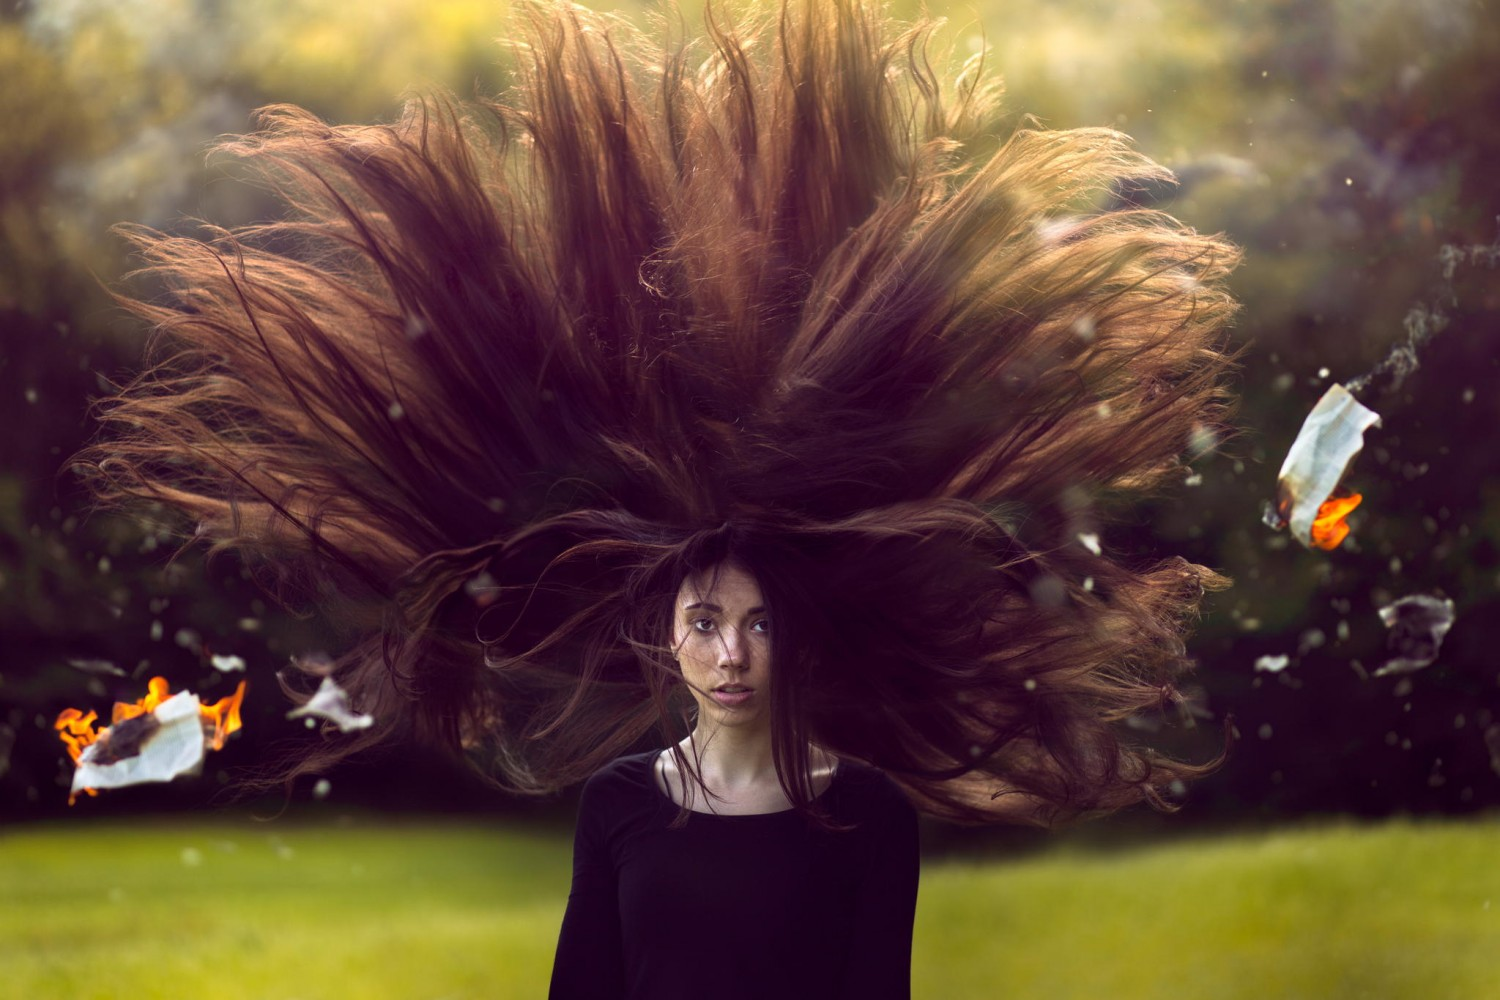 How To Create Big, Dramatic Hair In Photoshop